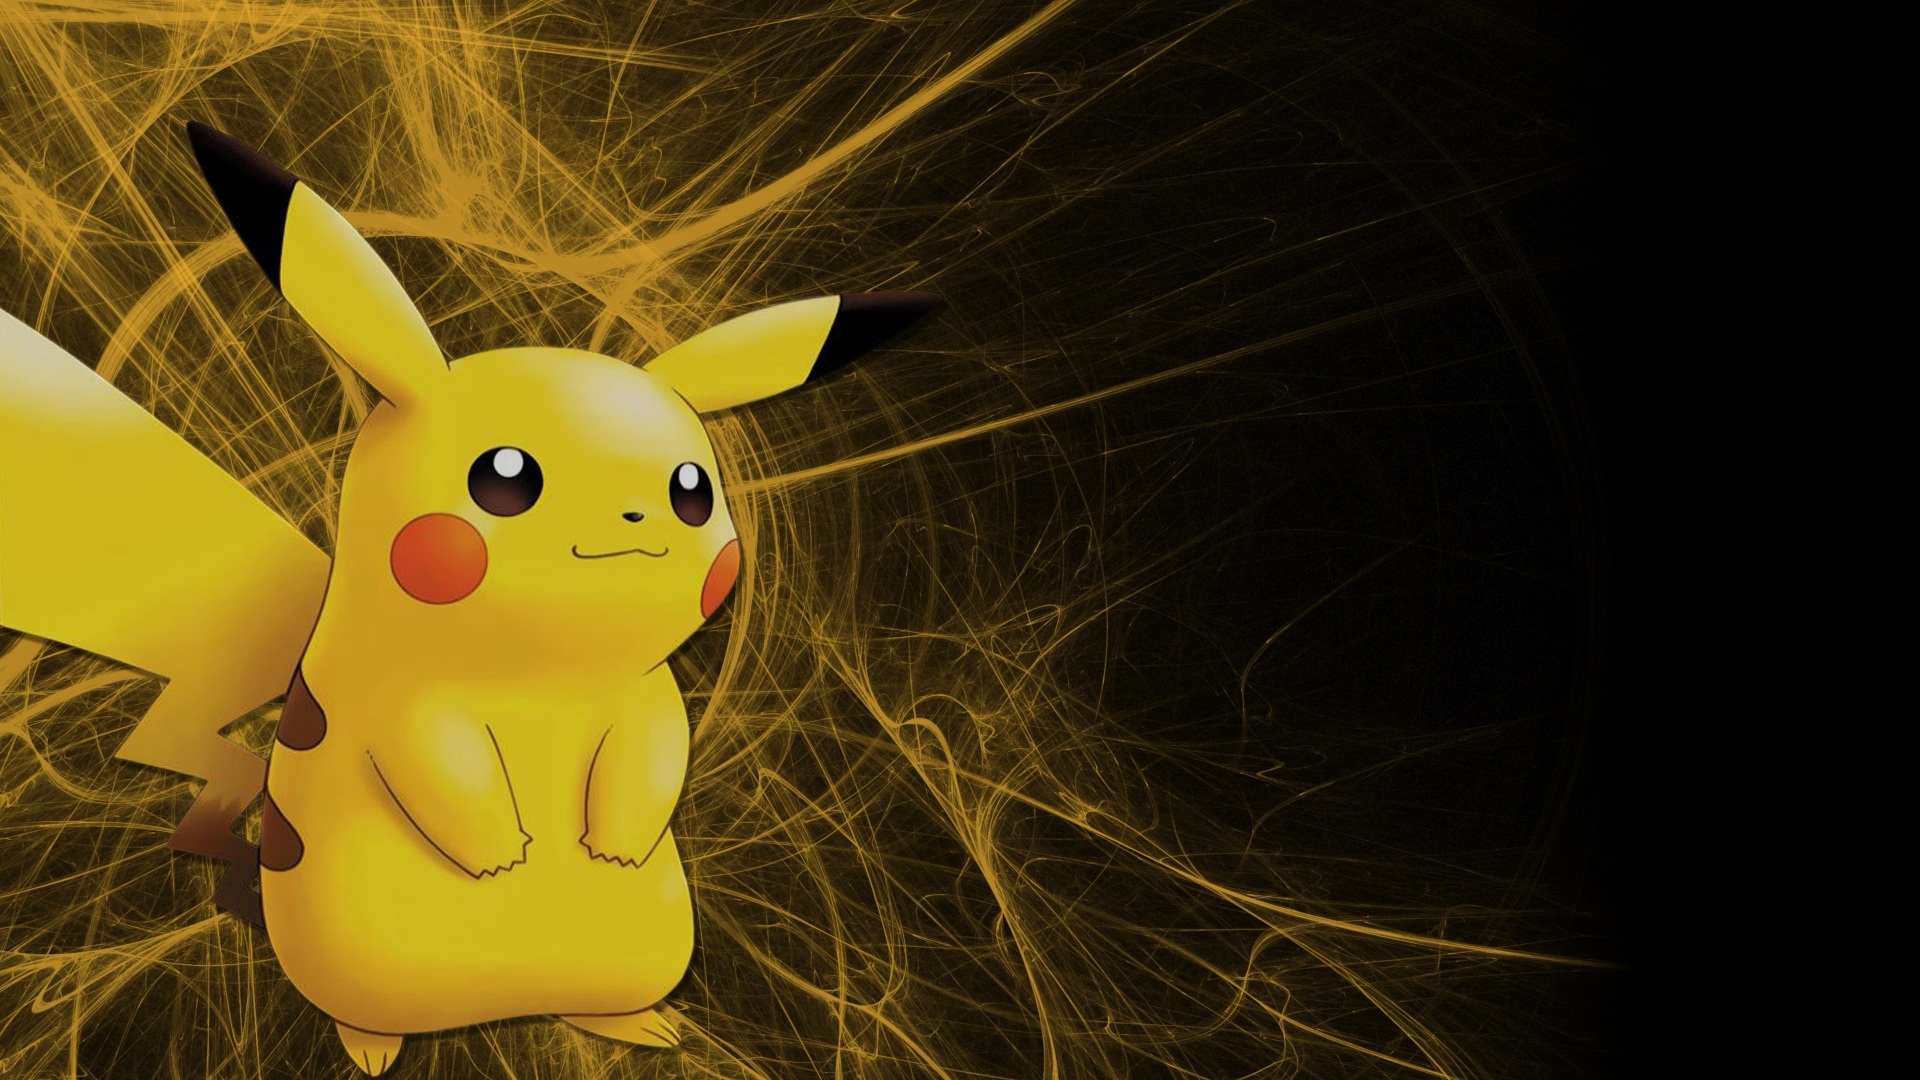 Pikachu Pikachu against a simple black background Keeping it classy 1920x1080